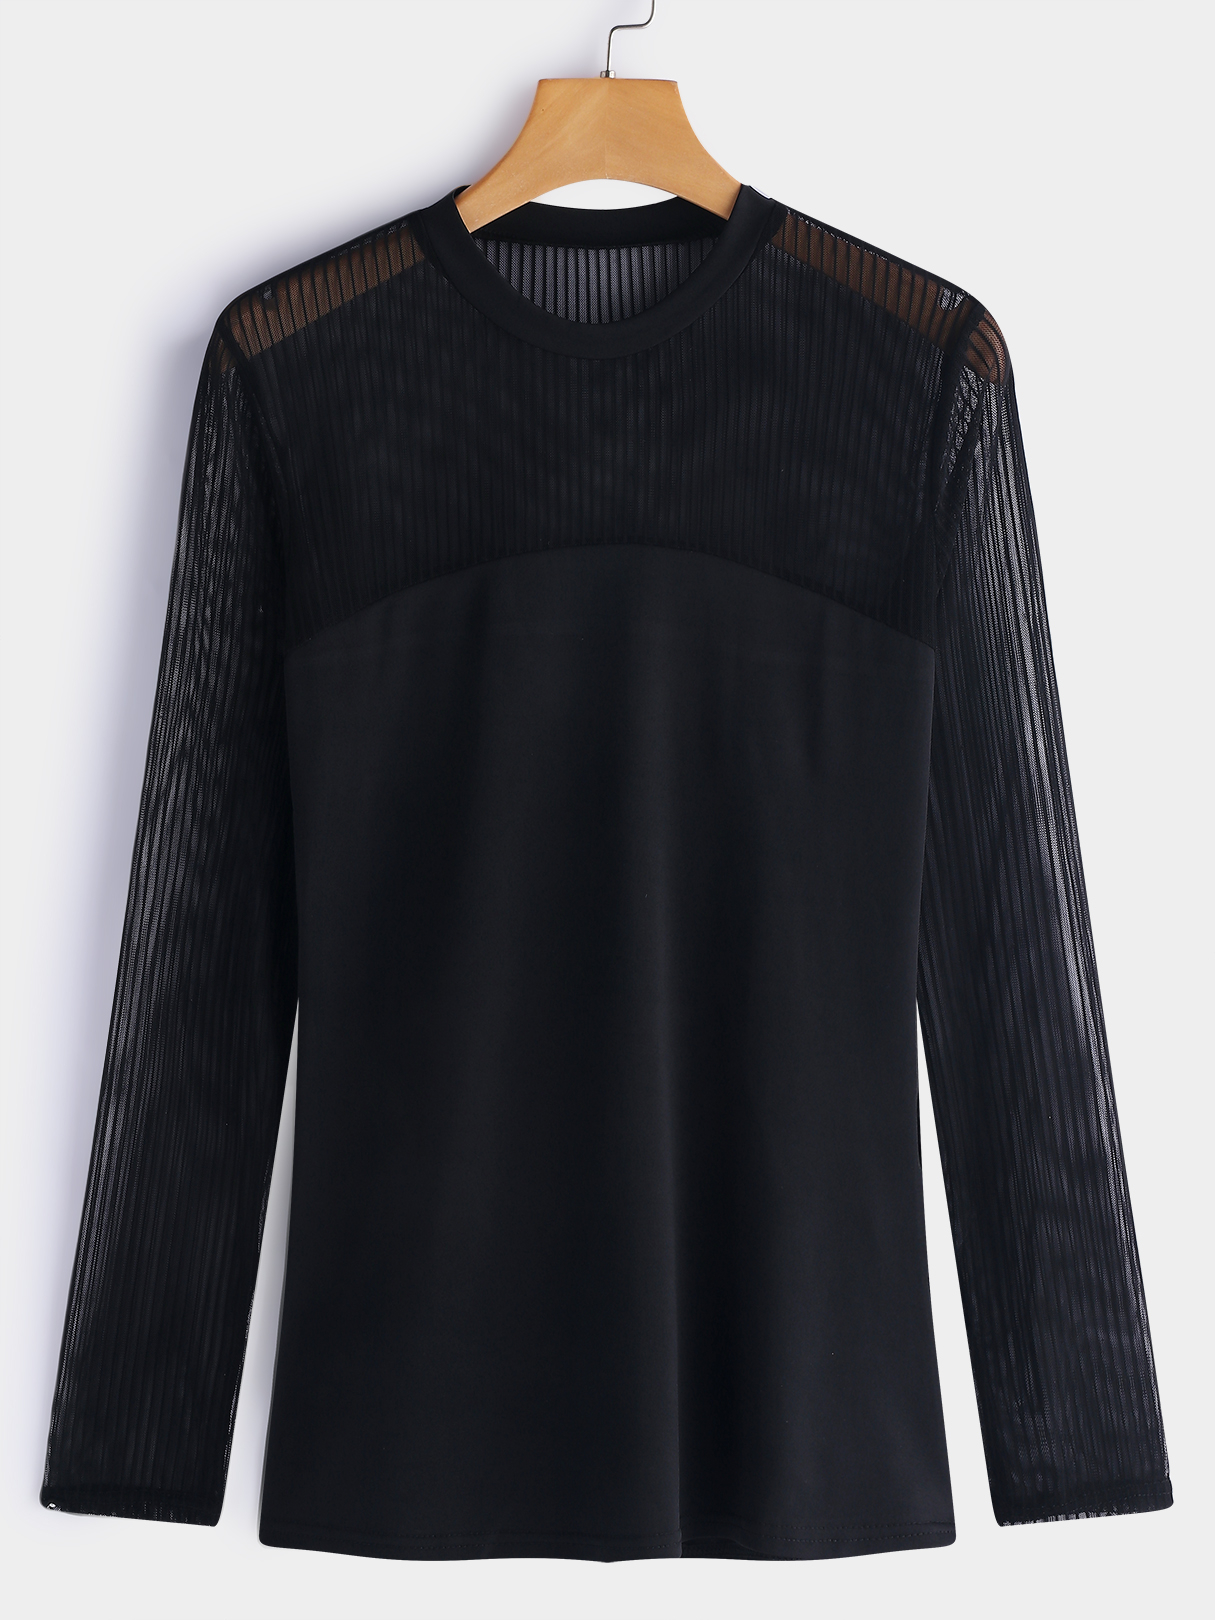 Black Lace Details Crew Neck Long Sleeves T-shirts black sexy crew neck rips details t shirt